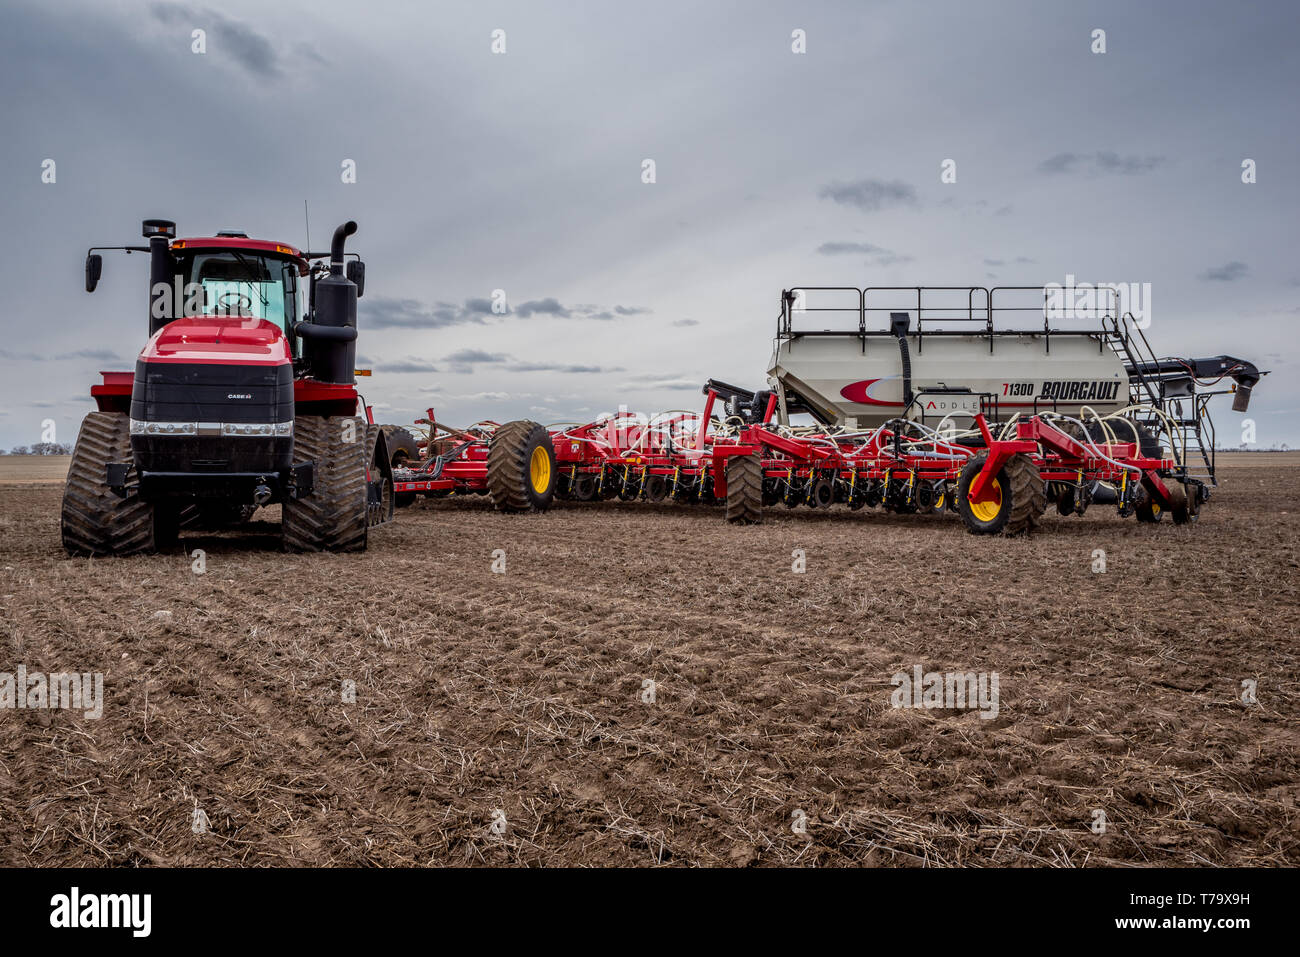 Swift Current, SK/Canada- May 4, 2019: Tractor and air drill seeding equipment in the field in Saskatchewan, Canada - Stock Image